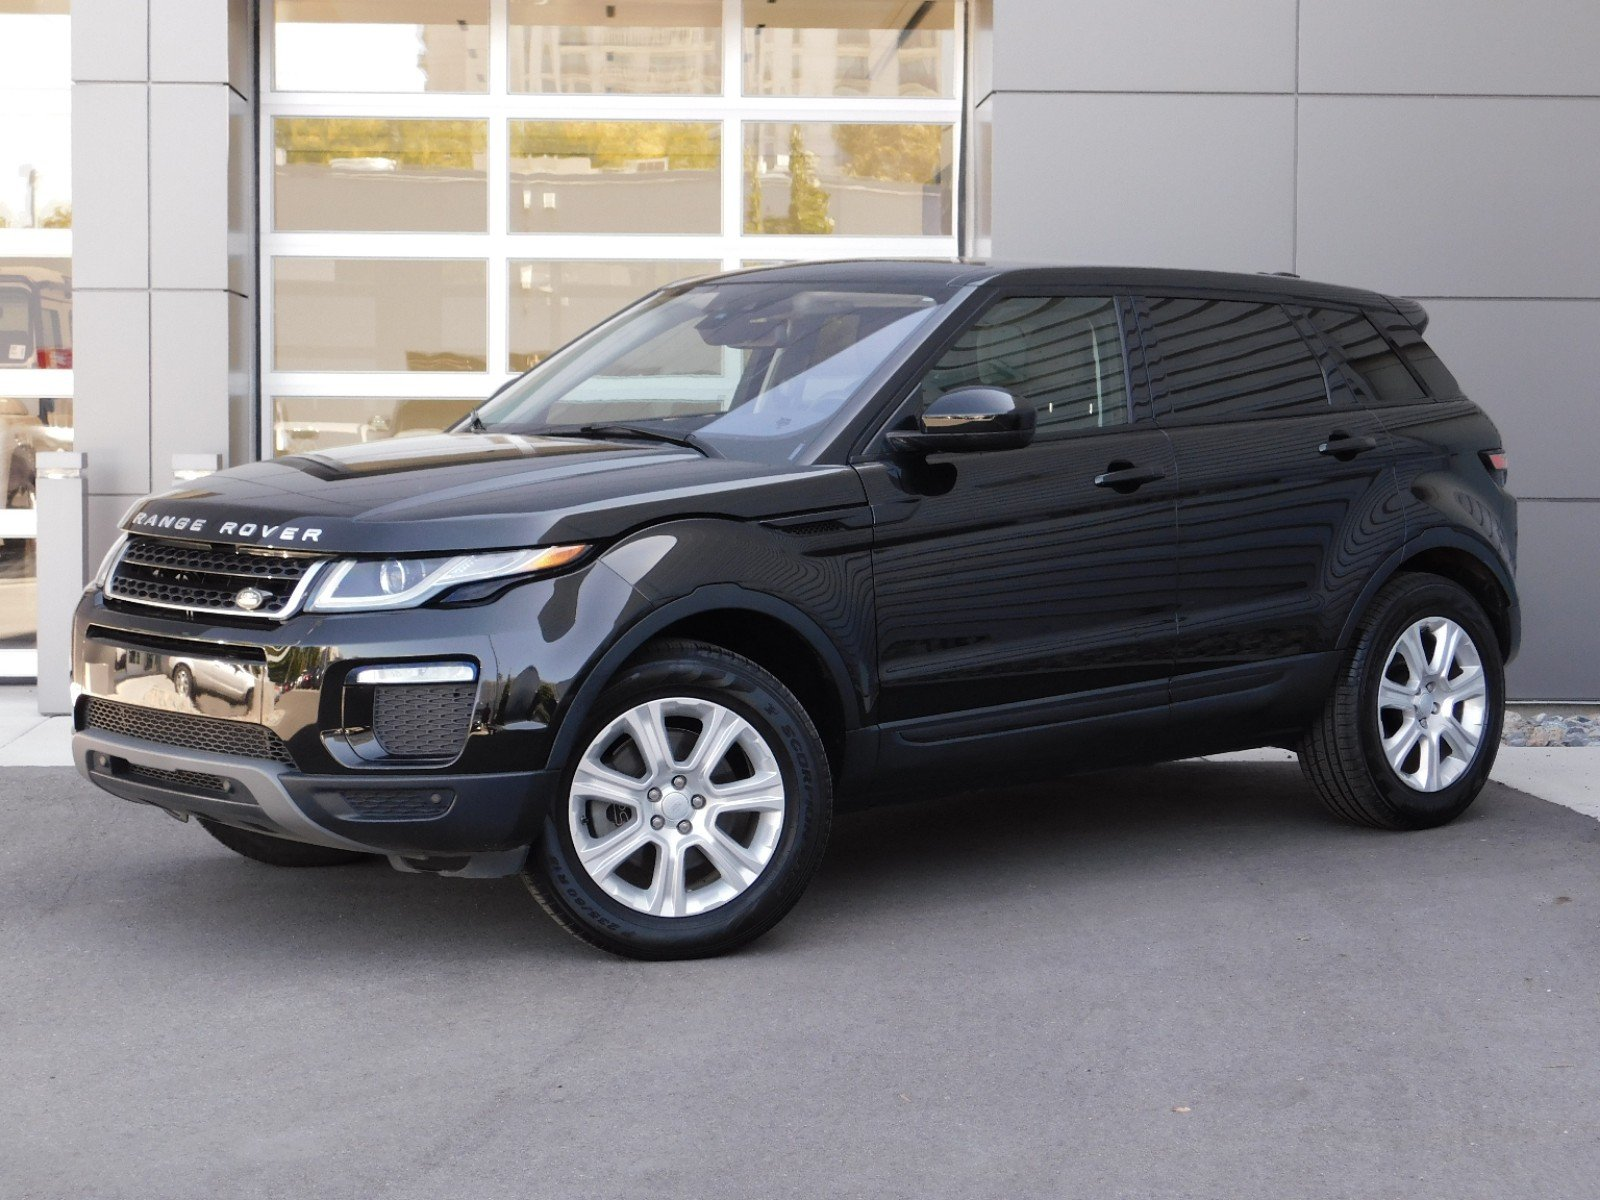 Pre-Owned 2016 Land Rover Range Rover Evoque WAGON 4 DOOR